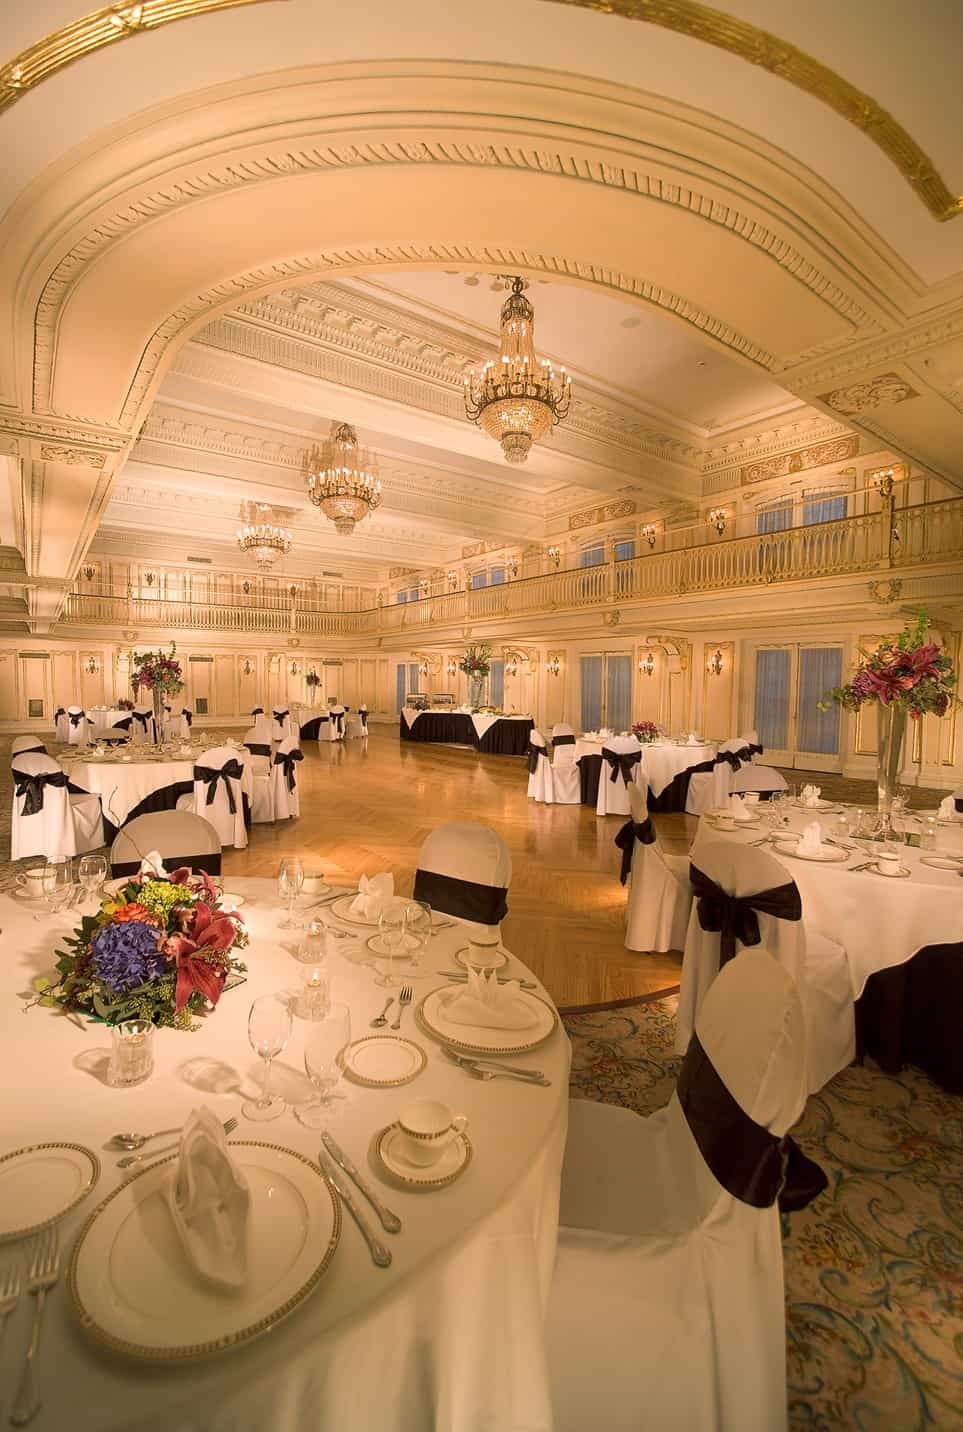 Meeting Room | Seats and tables | Historic Davenport